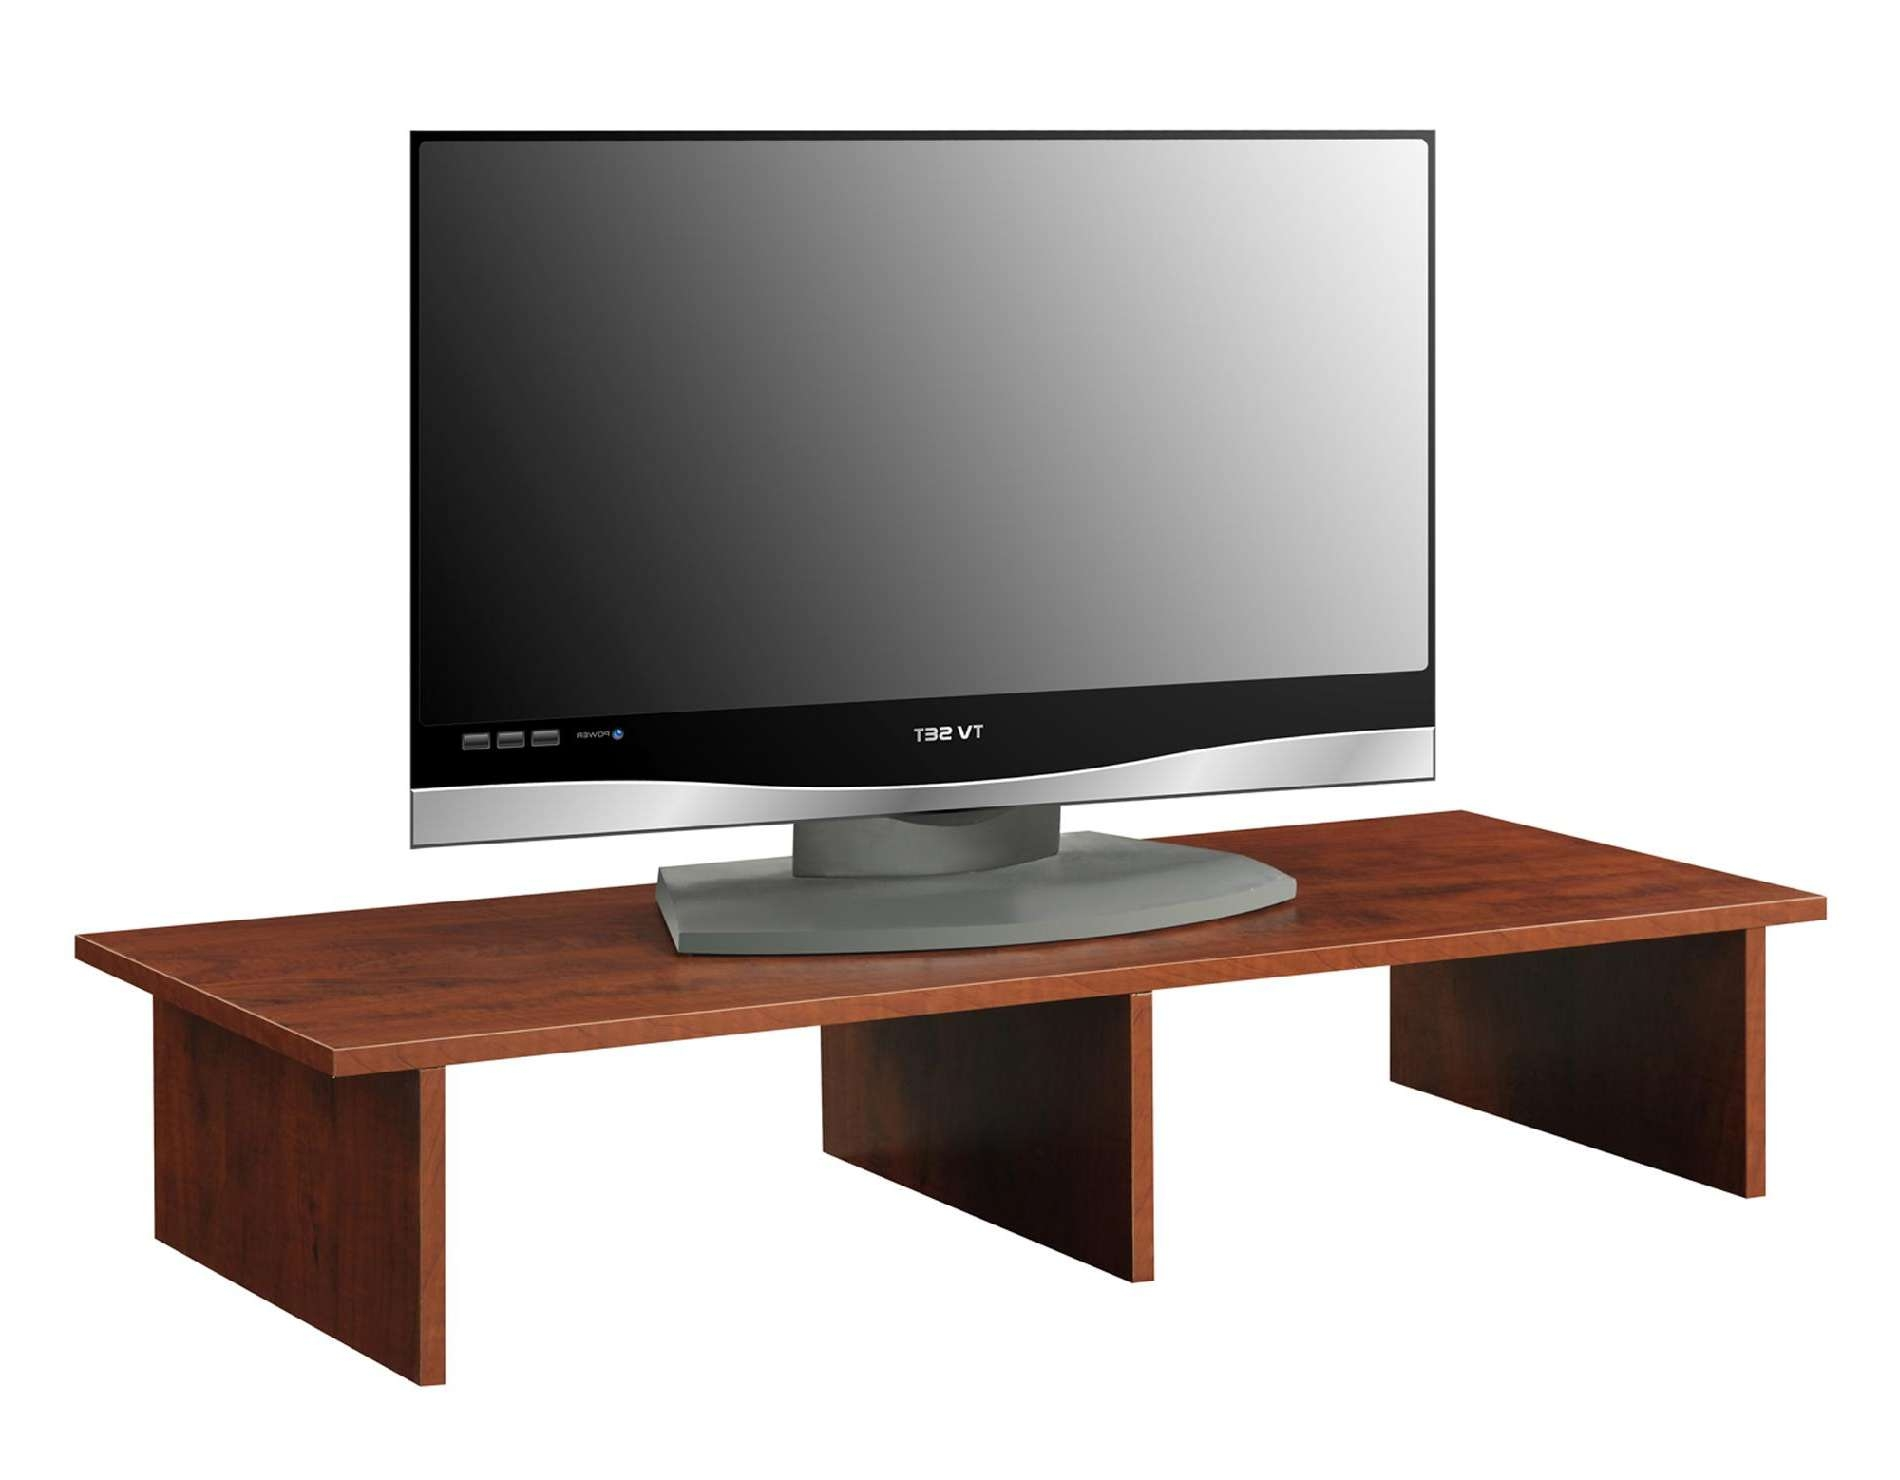 Unique Tv Stand Riser 16 With Additional Interior Decor Home With With Regard To Unique Tv Stands (View 18 of 20)